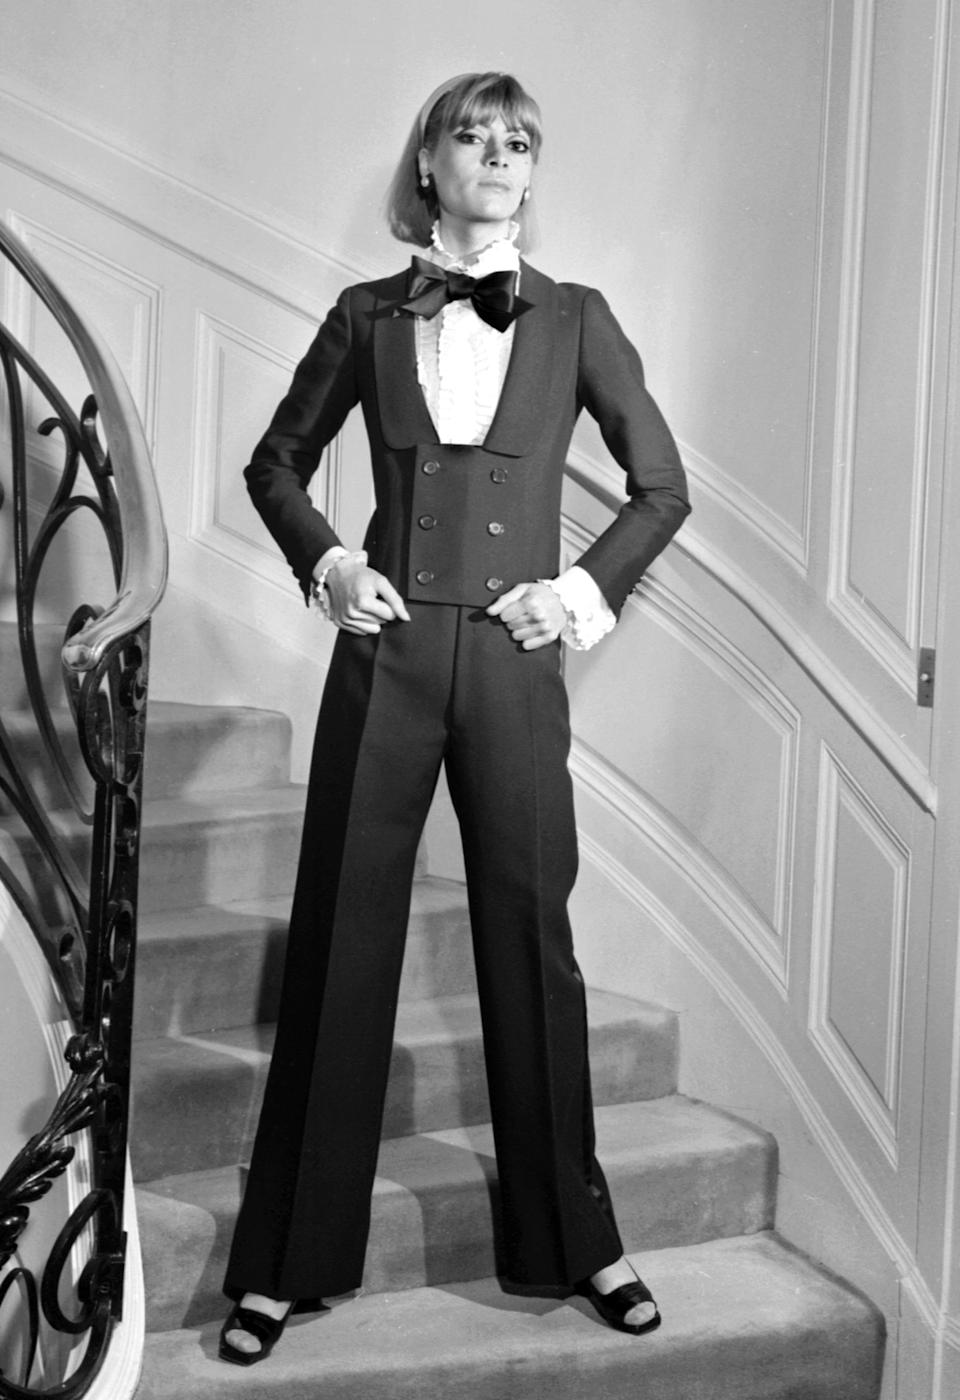 A model in an alpaca spencer dinner jacket, jabot blouse, and black silk bow tie for the Yves Saint Laurent 1967 Spring-Summer haute couture collection. (Photo: AFP/Getty Images)